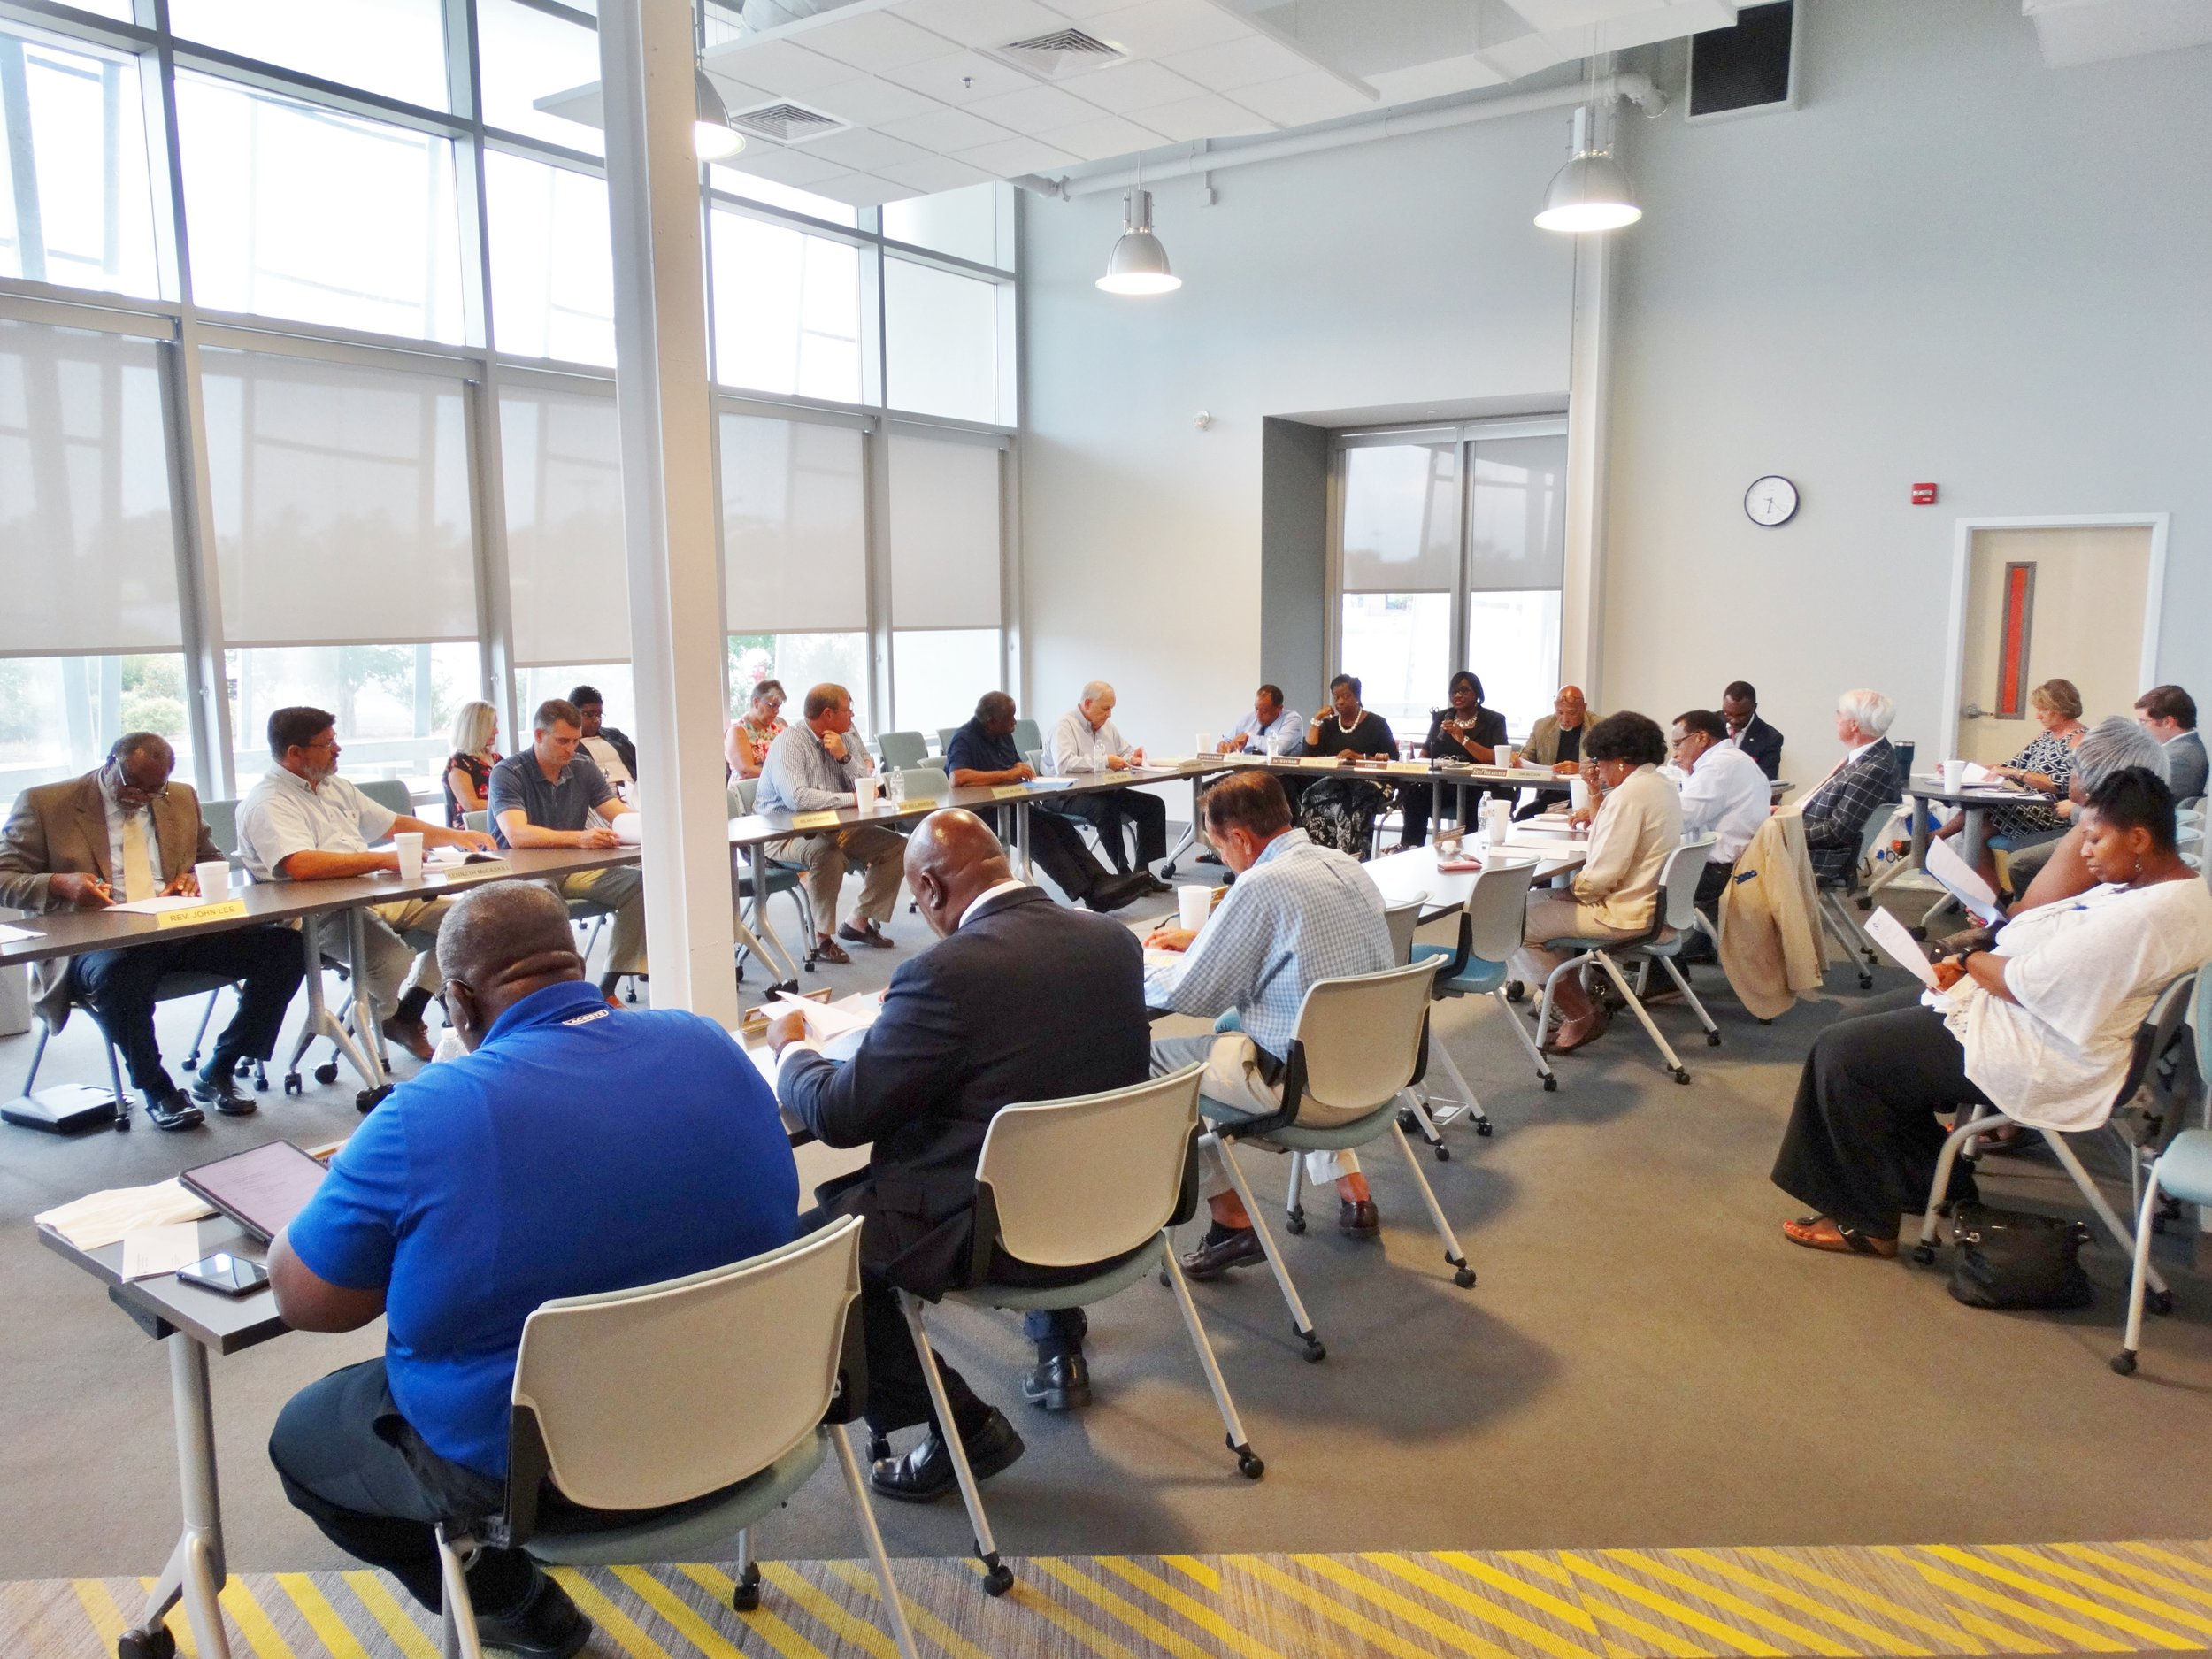 AUGUST 2019 BOARD MEETING - August 12, 2019